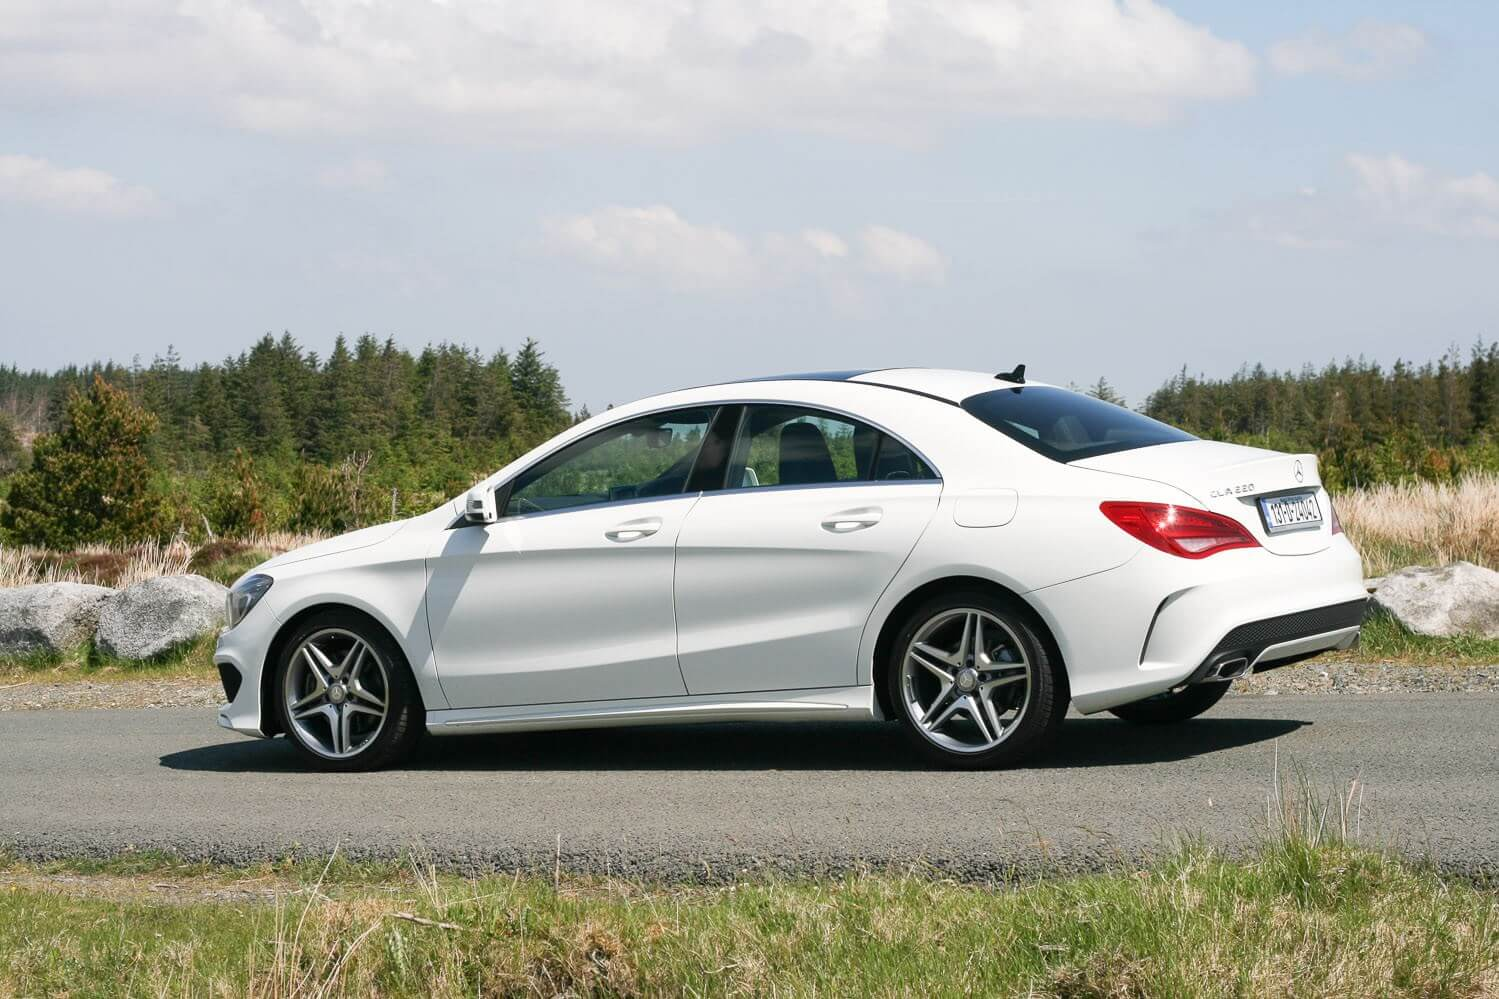 Mercedes Benz Cla 220 Cdi Amg Sport Review Carzone New